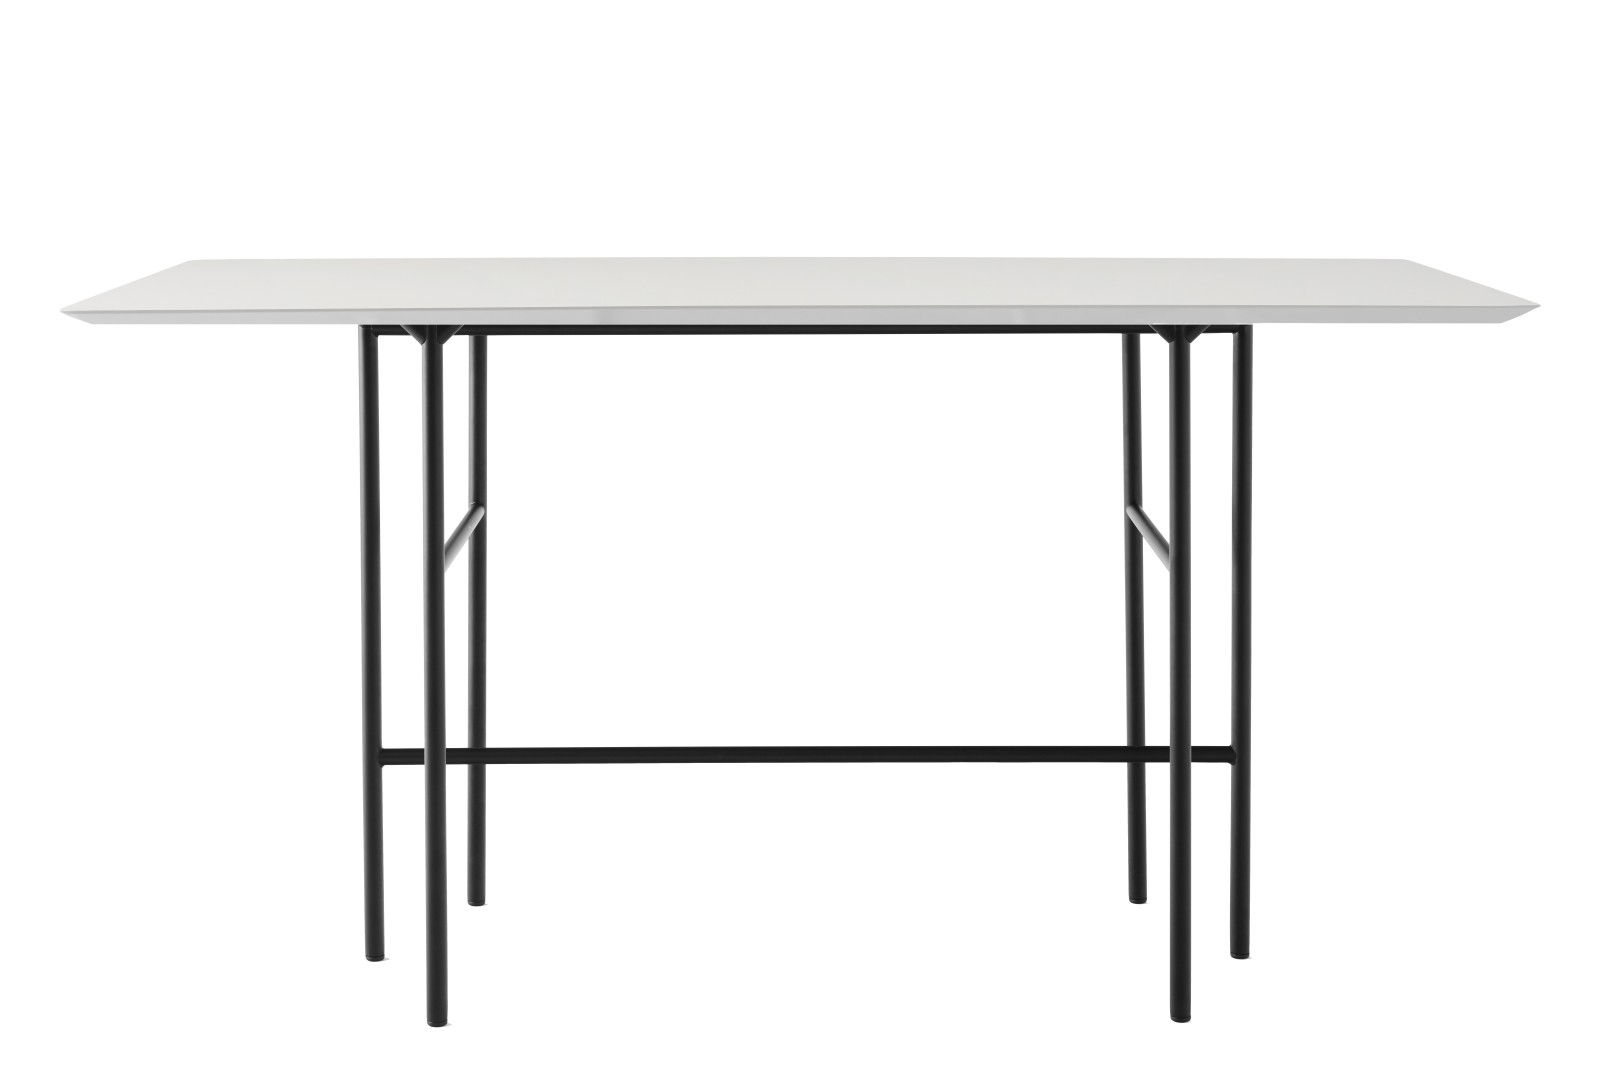 Snaregade Rectangular Bar Table Black/Mushroom